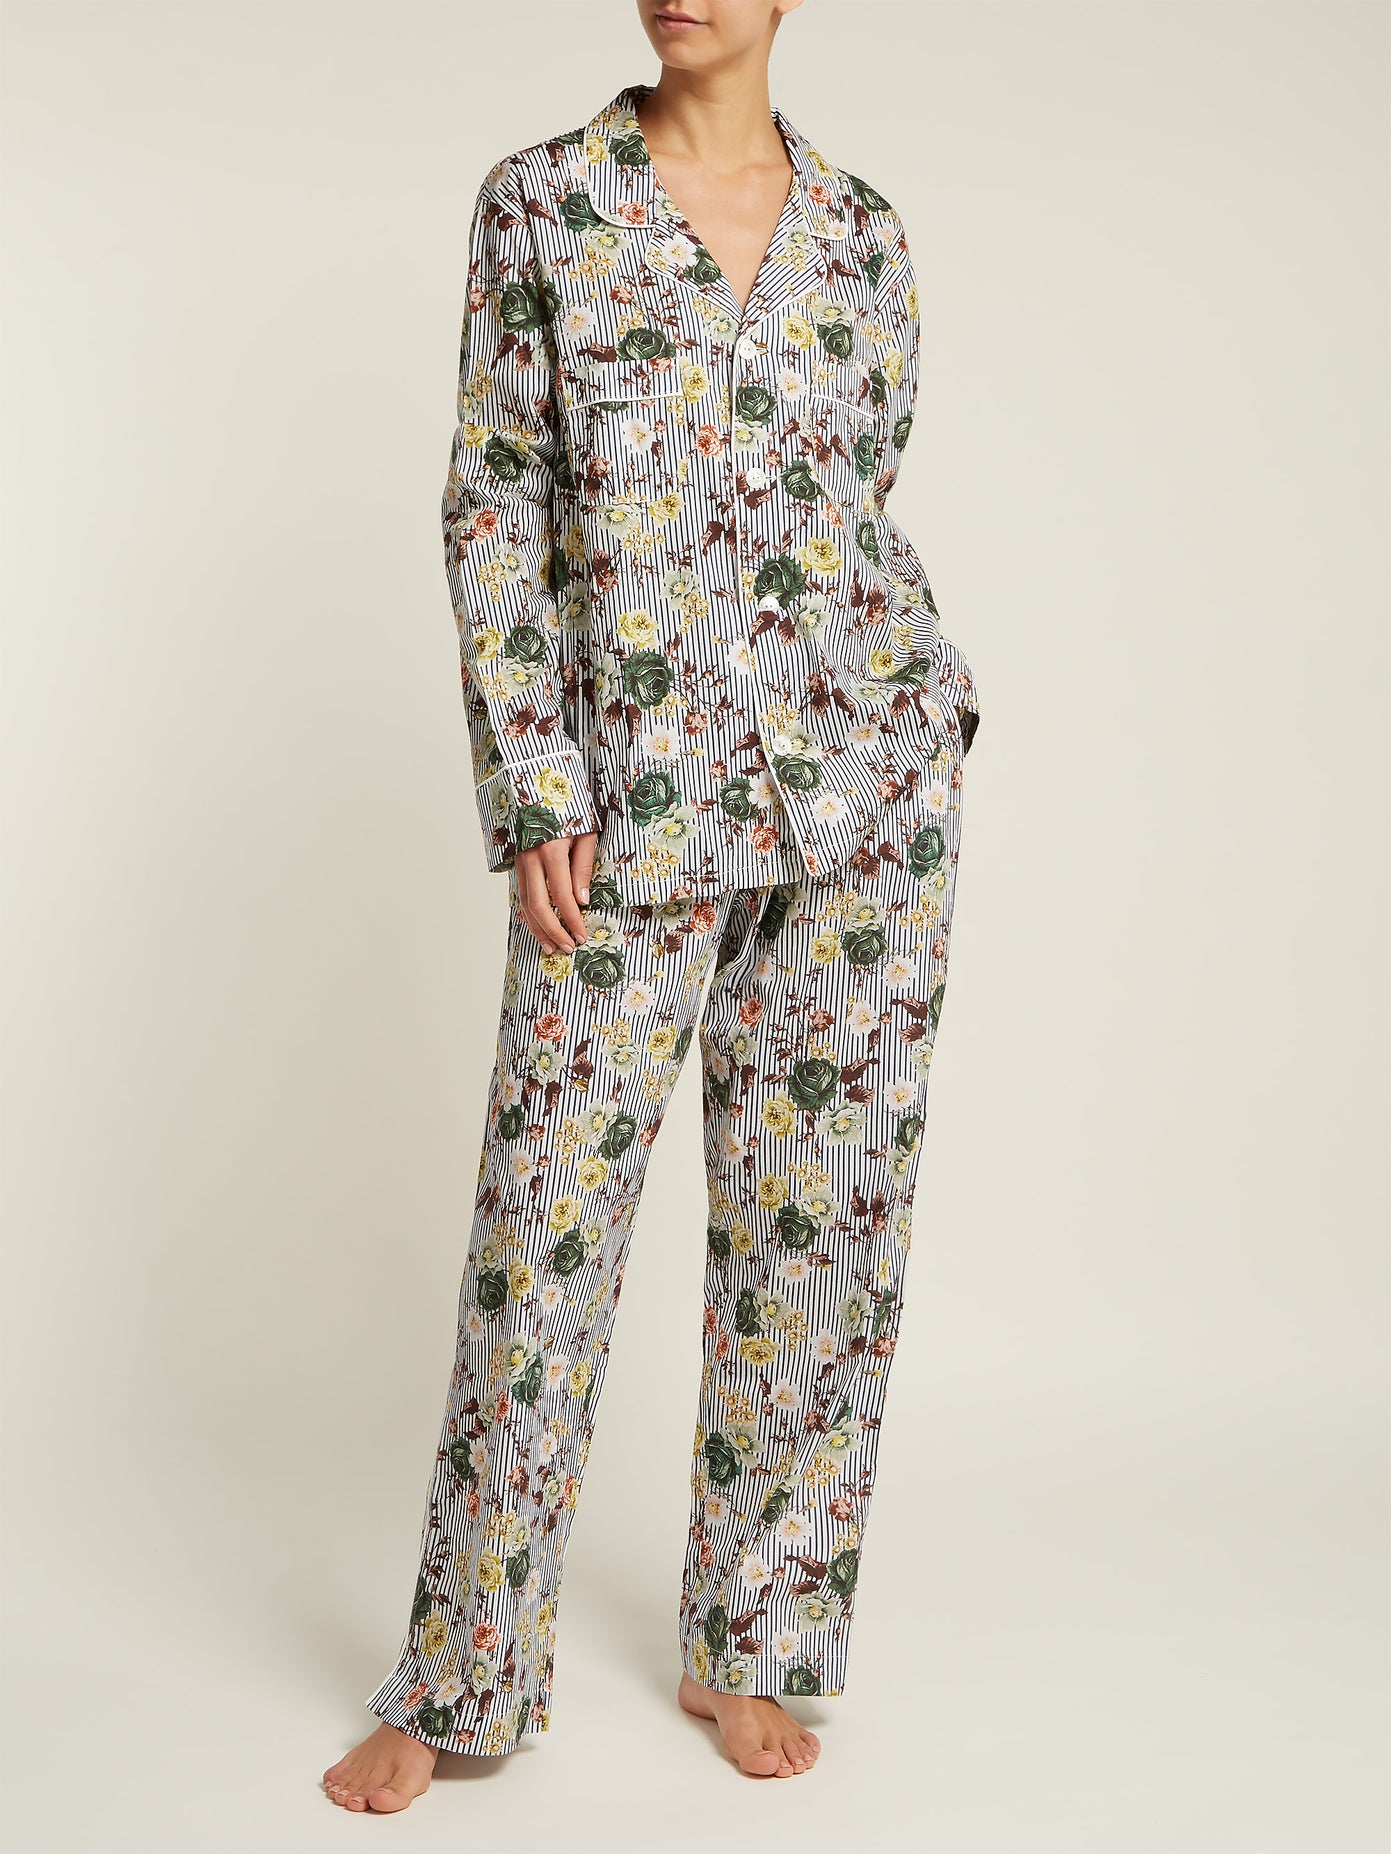 Erdem cotton pajamas